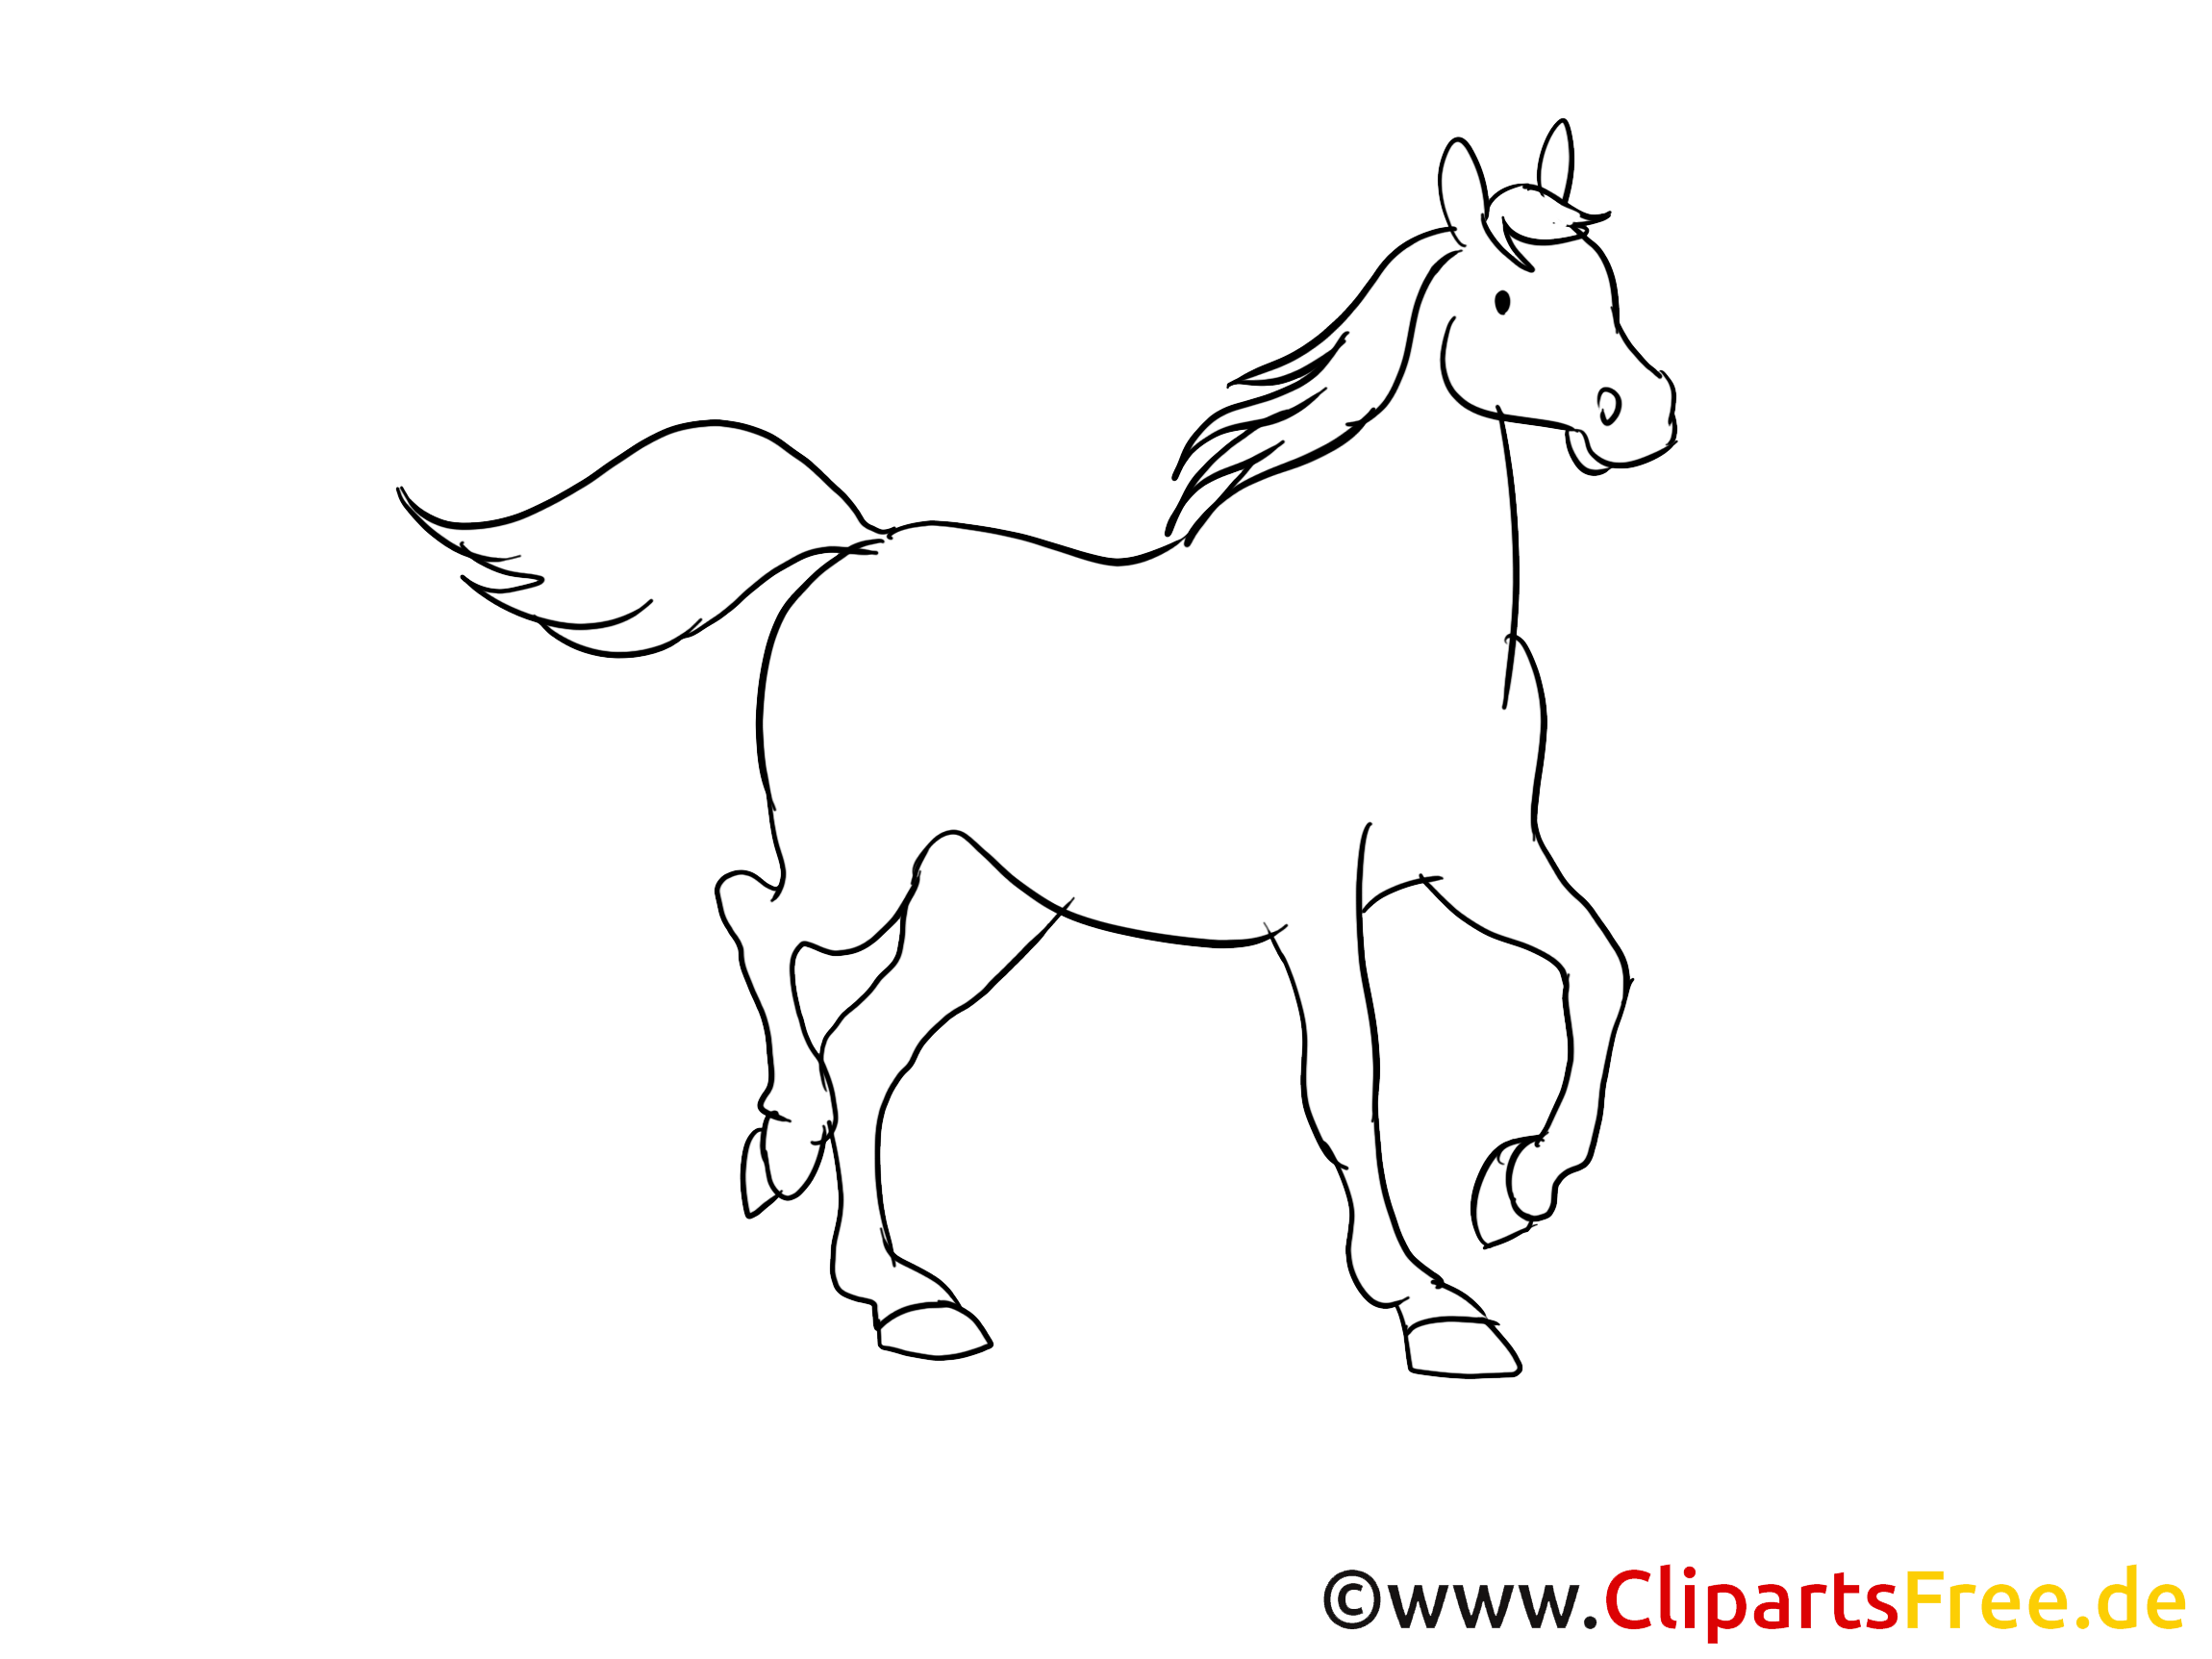 Image gratuite à colorier cheval illustration